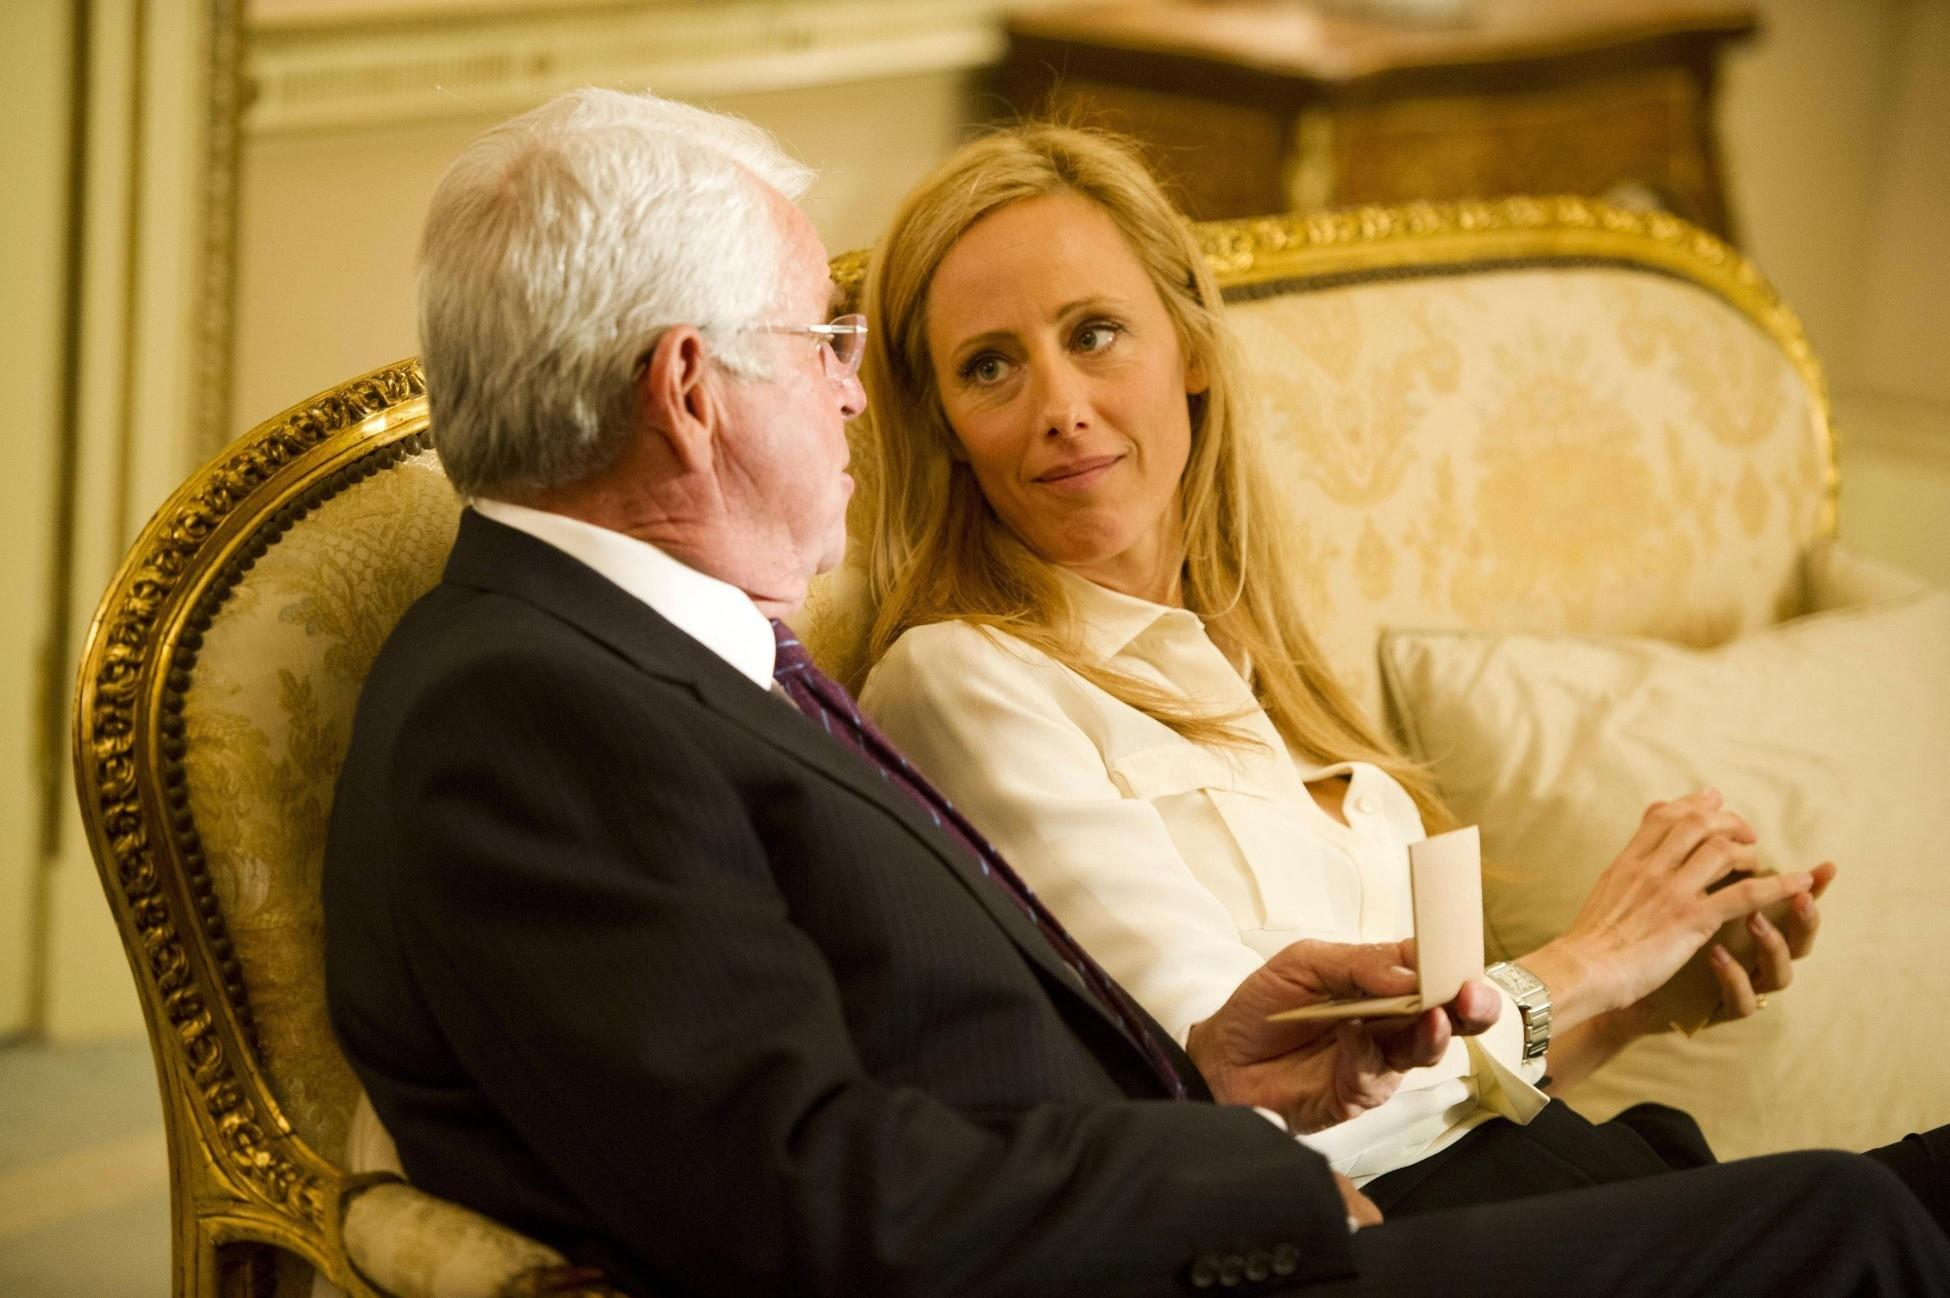 President Heller (William Devane, L) and Audrey (Kim Raver, R) spend time together.